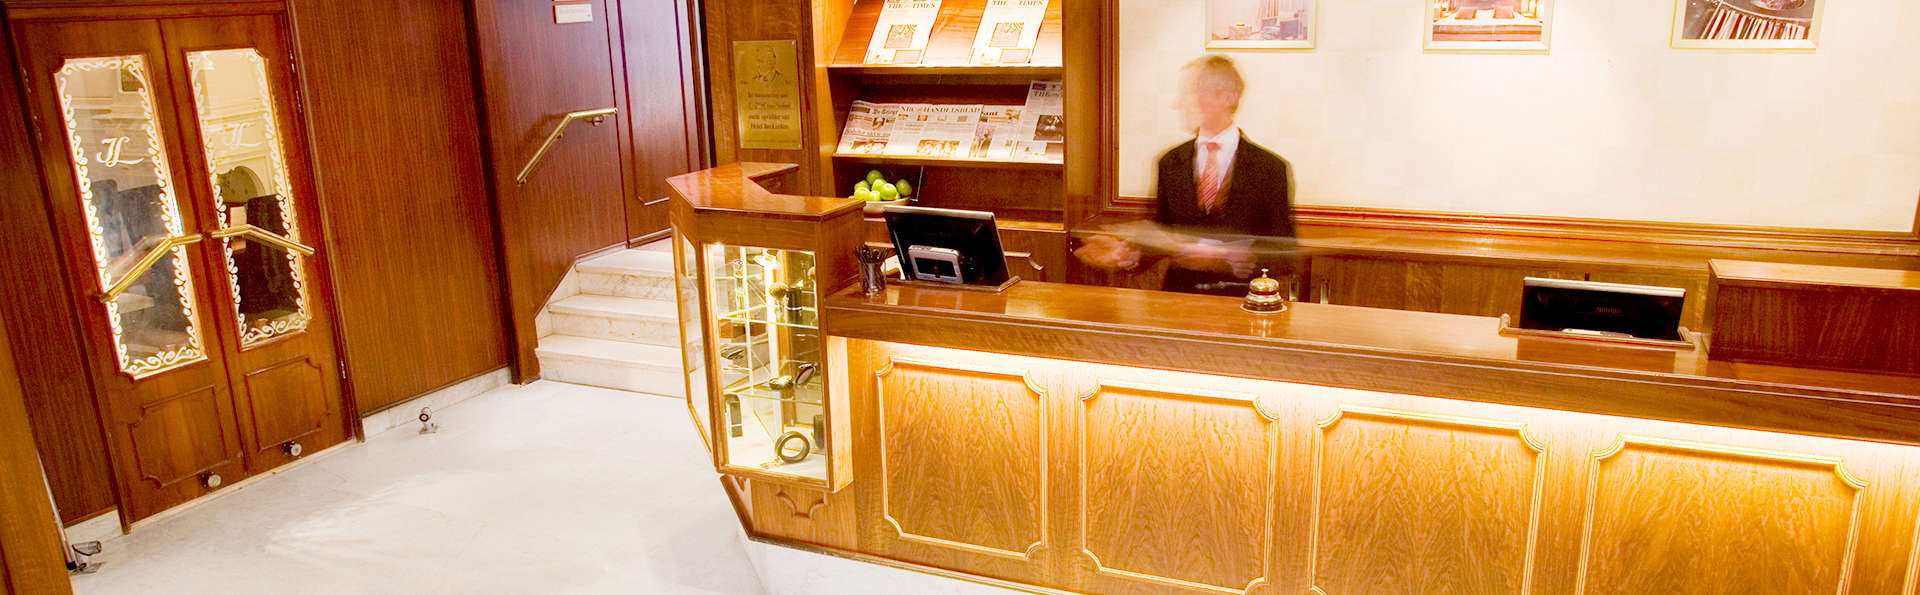 Bilderberg Hotel Jan Luyken  - Edit_reception.jpg